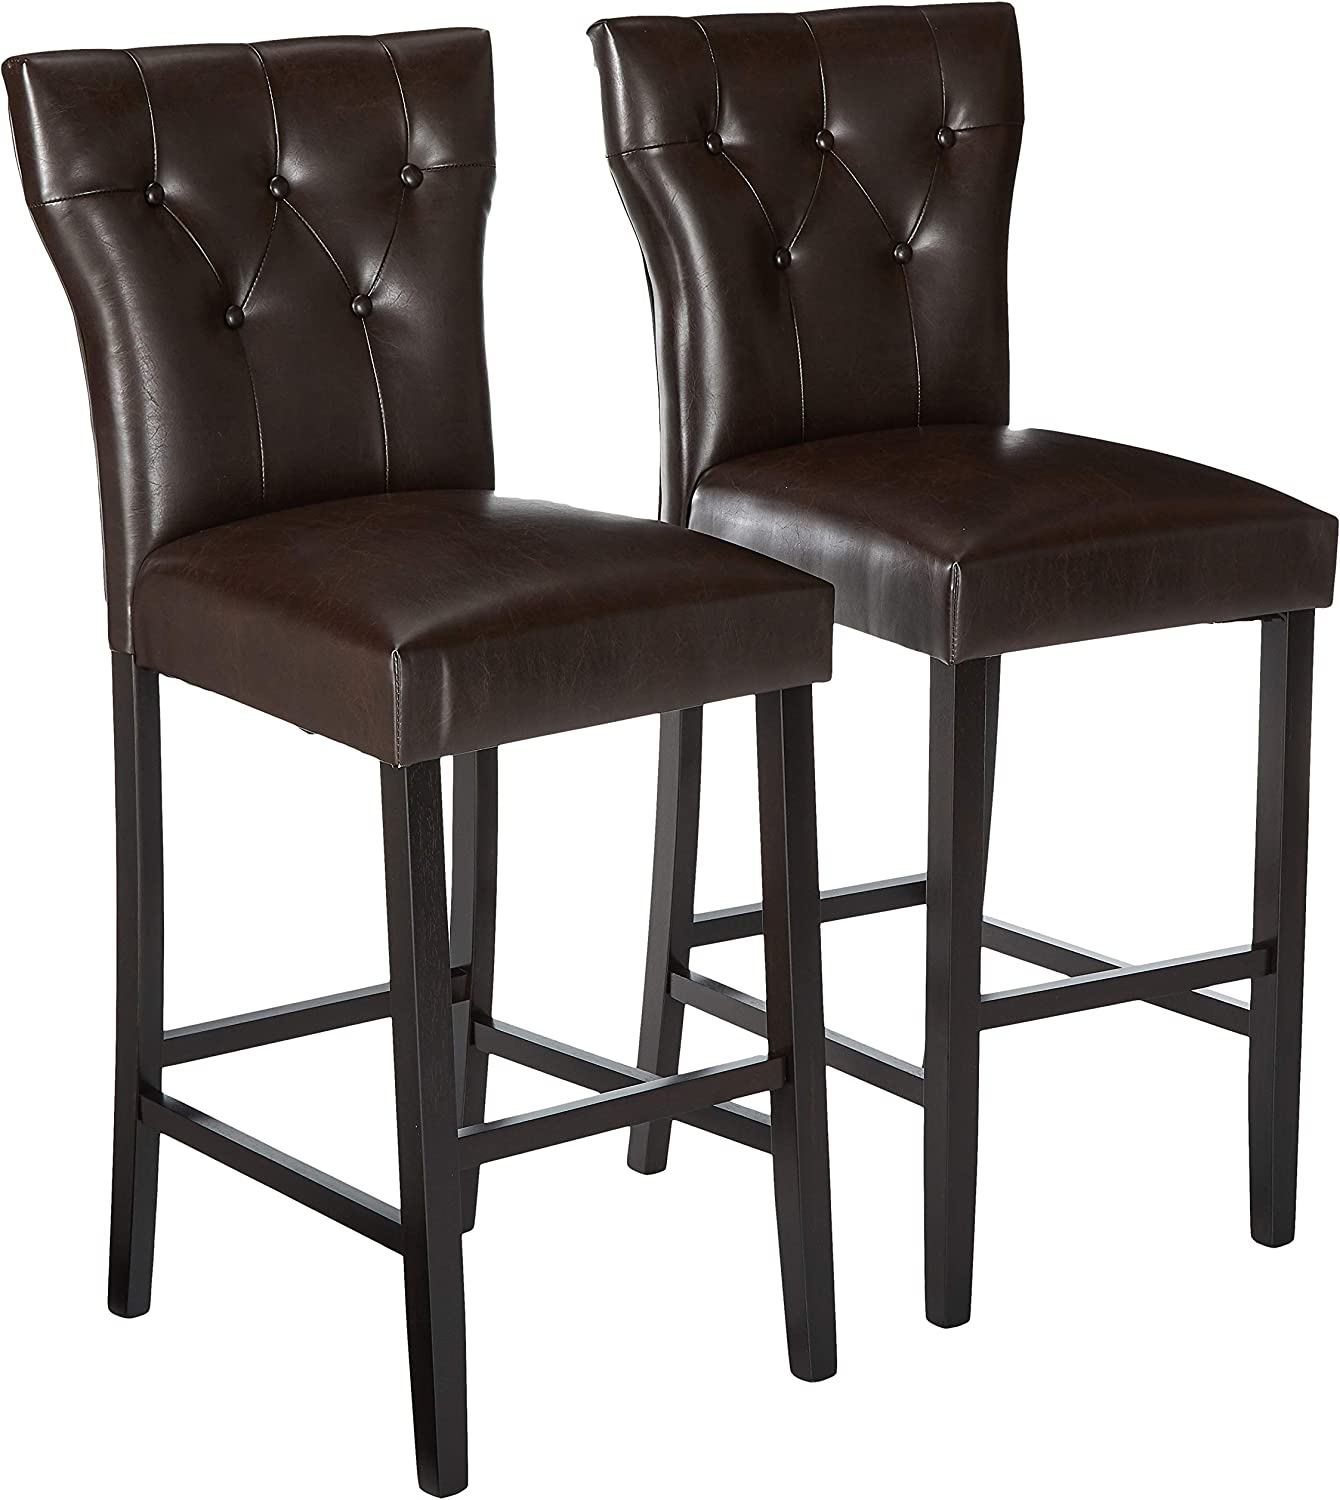 Christopher Knight Home Cadwallader Leather Barstools, 2-Pcs Set, Brown